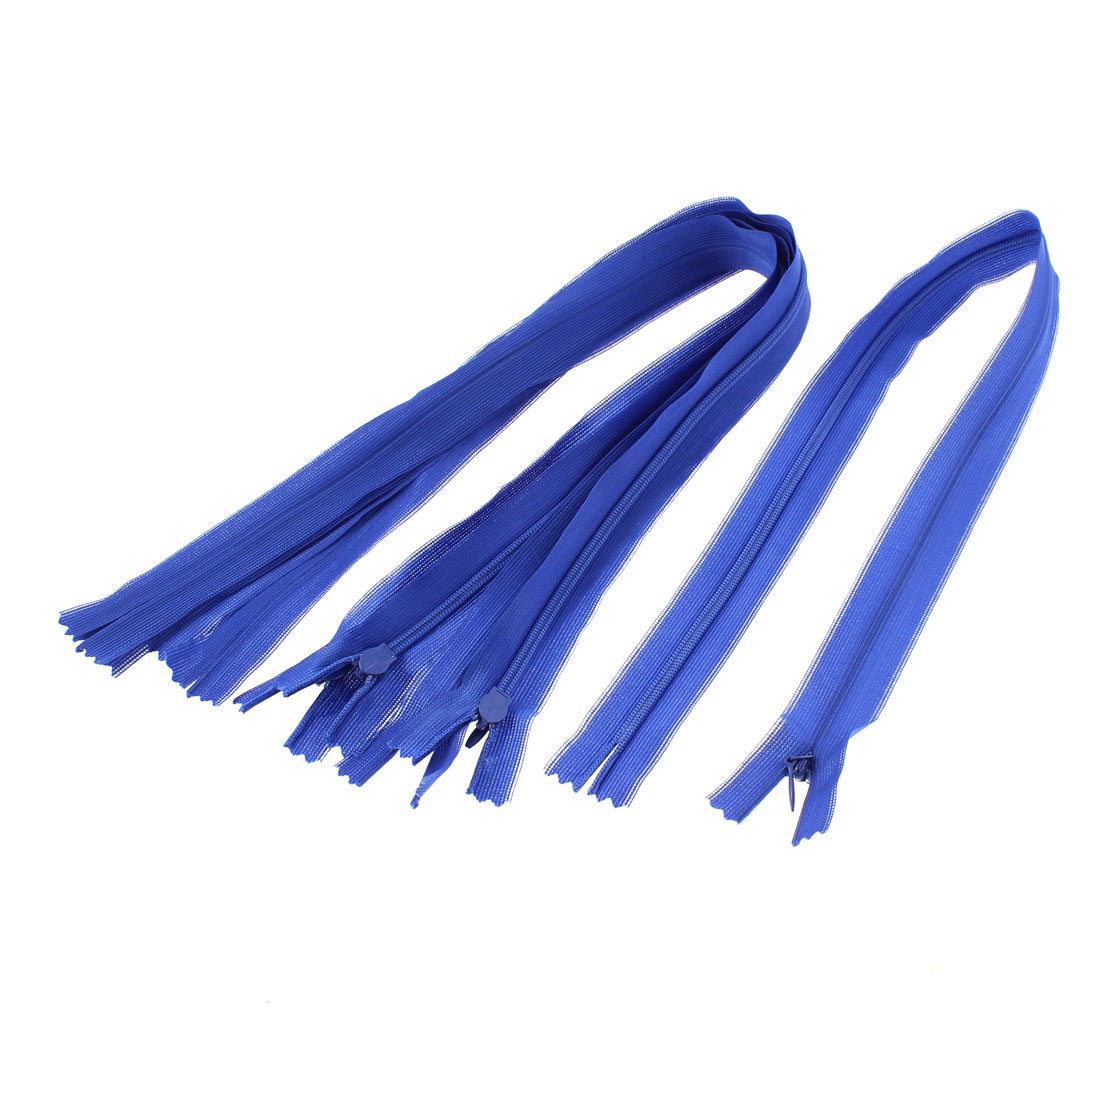 Dress Pants Closed End Nylon Zippers Tailor Sewing Craft Tool Blue 50cm 5 Pcs